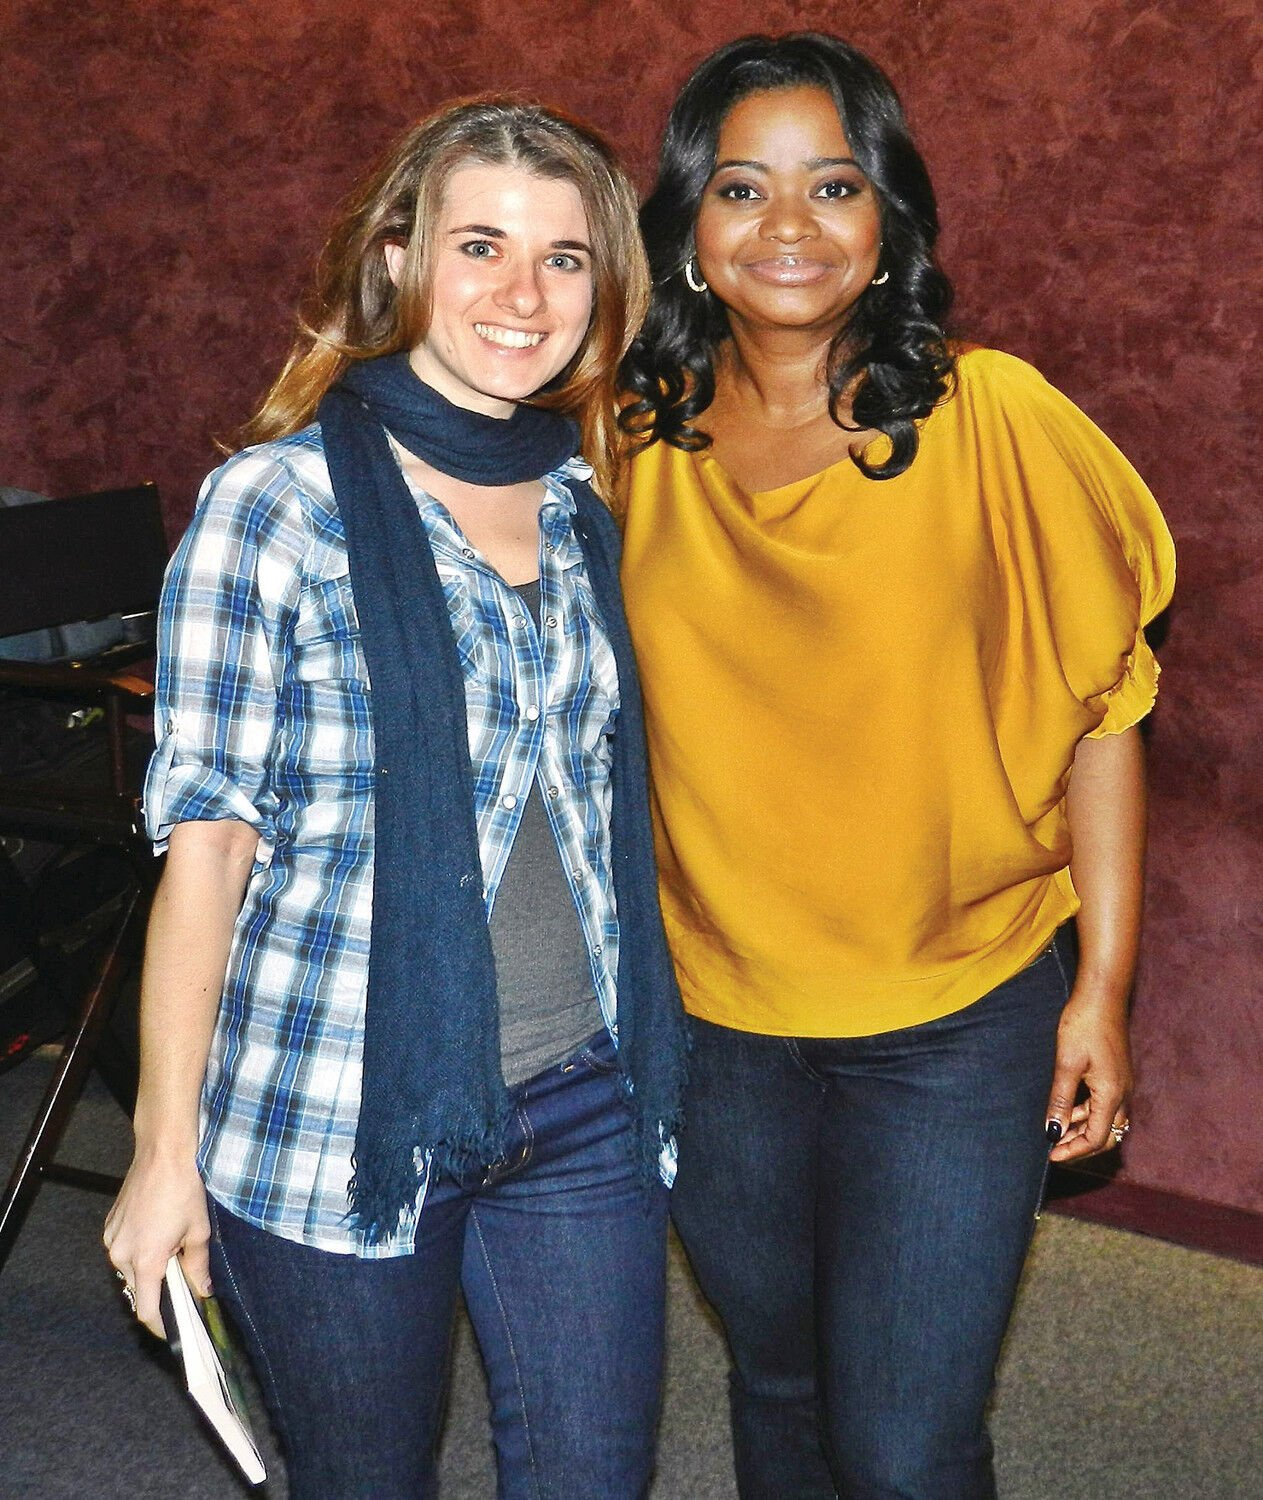 Octavia Spencer signs on as executive producer of local film, 'Mumbet'